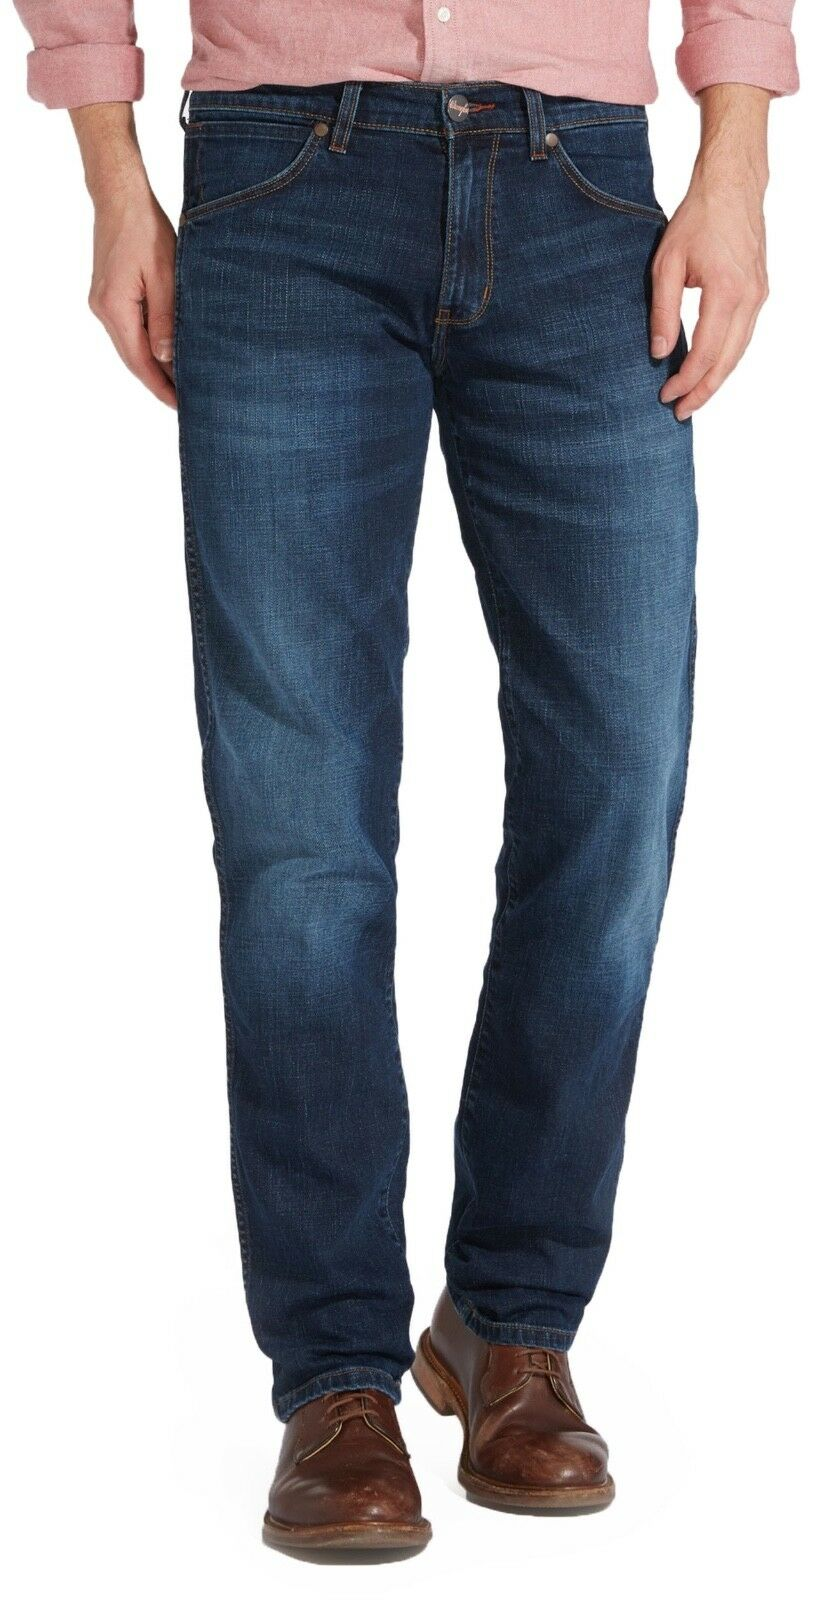 Wrangler Greensbgold Regular Straight Tapered Stretch Jeans El Camino bluee Denim